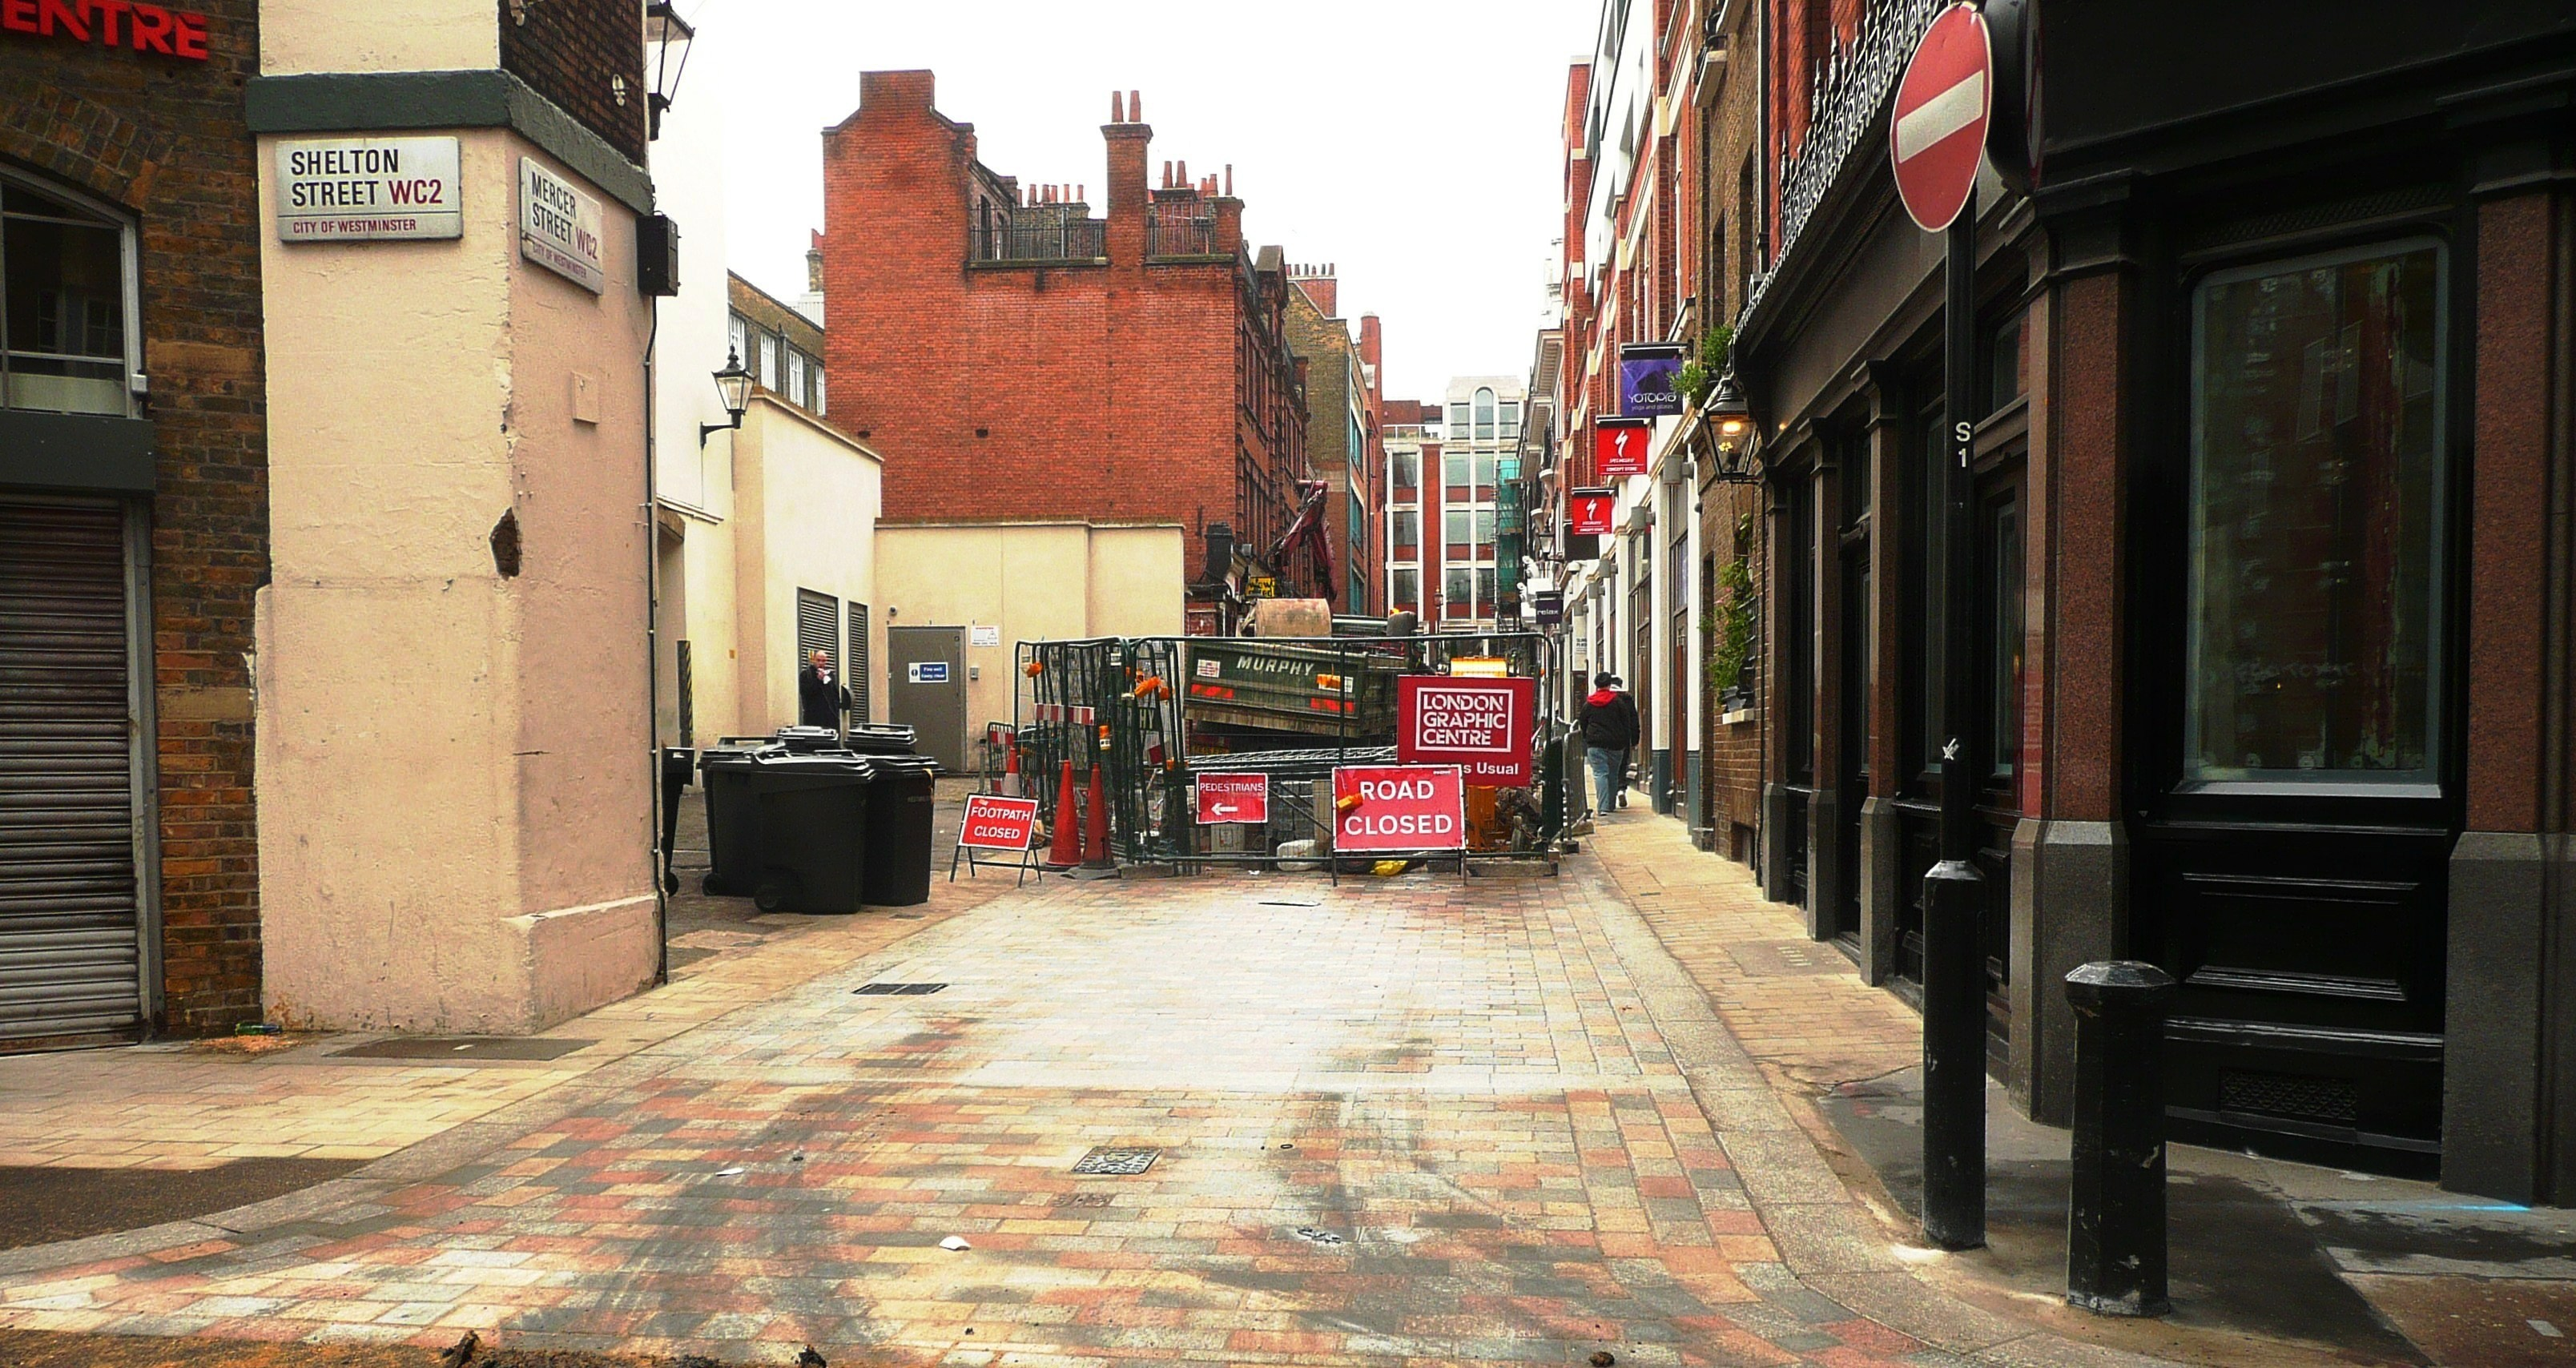 Westminster City Council's works, laying multi-coloured dressed setts in Mercer Street South.